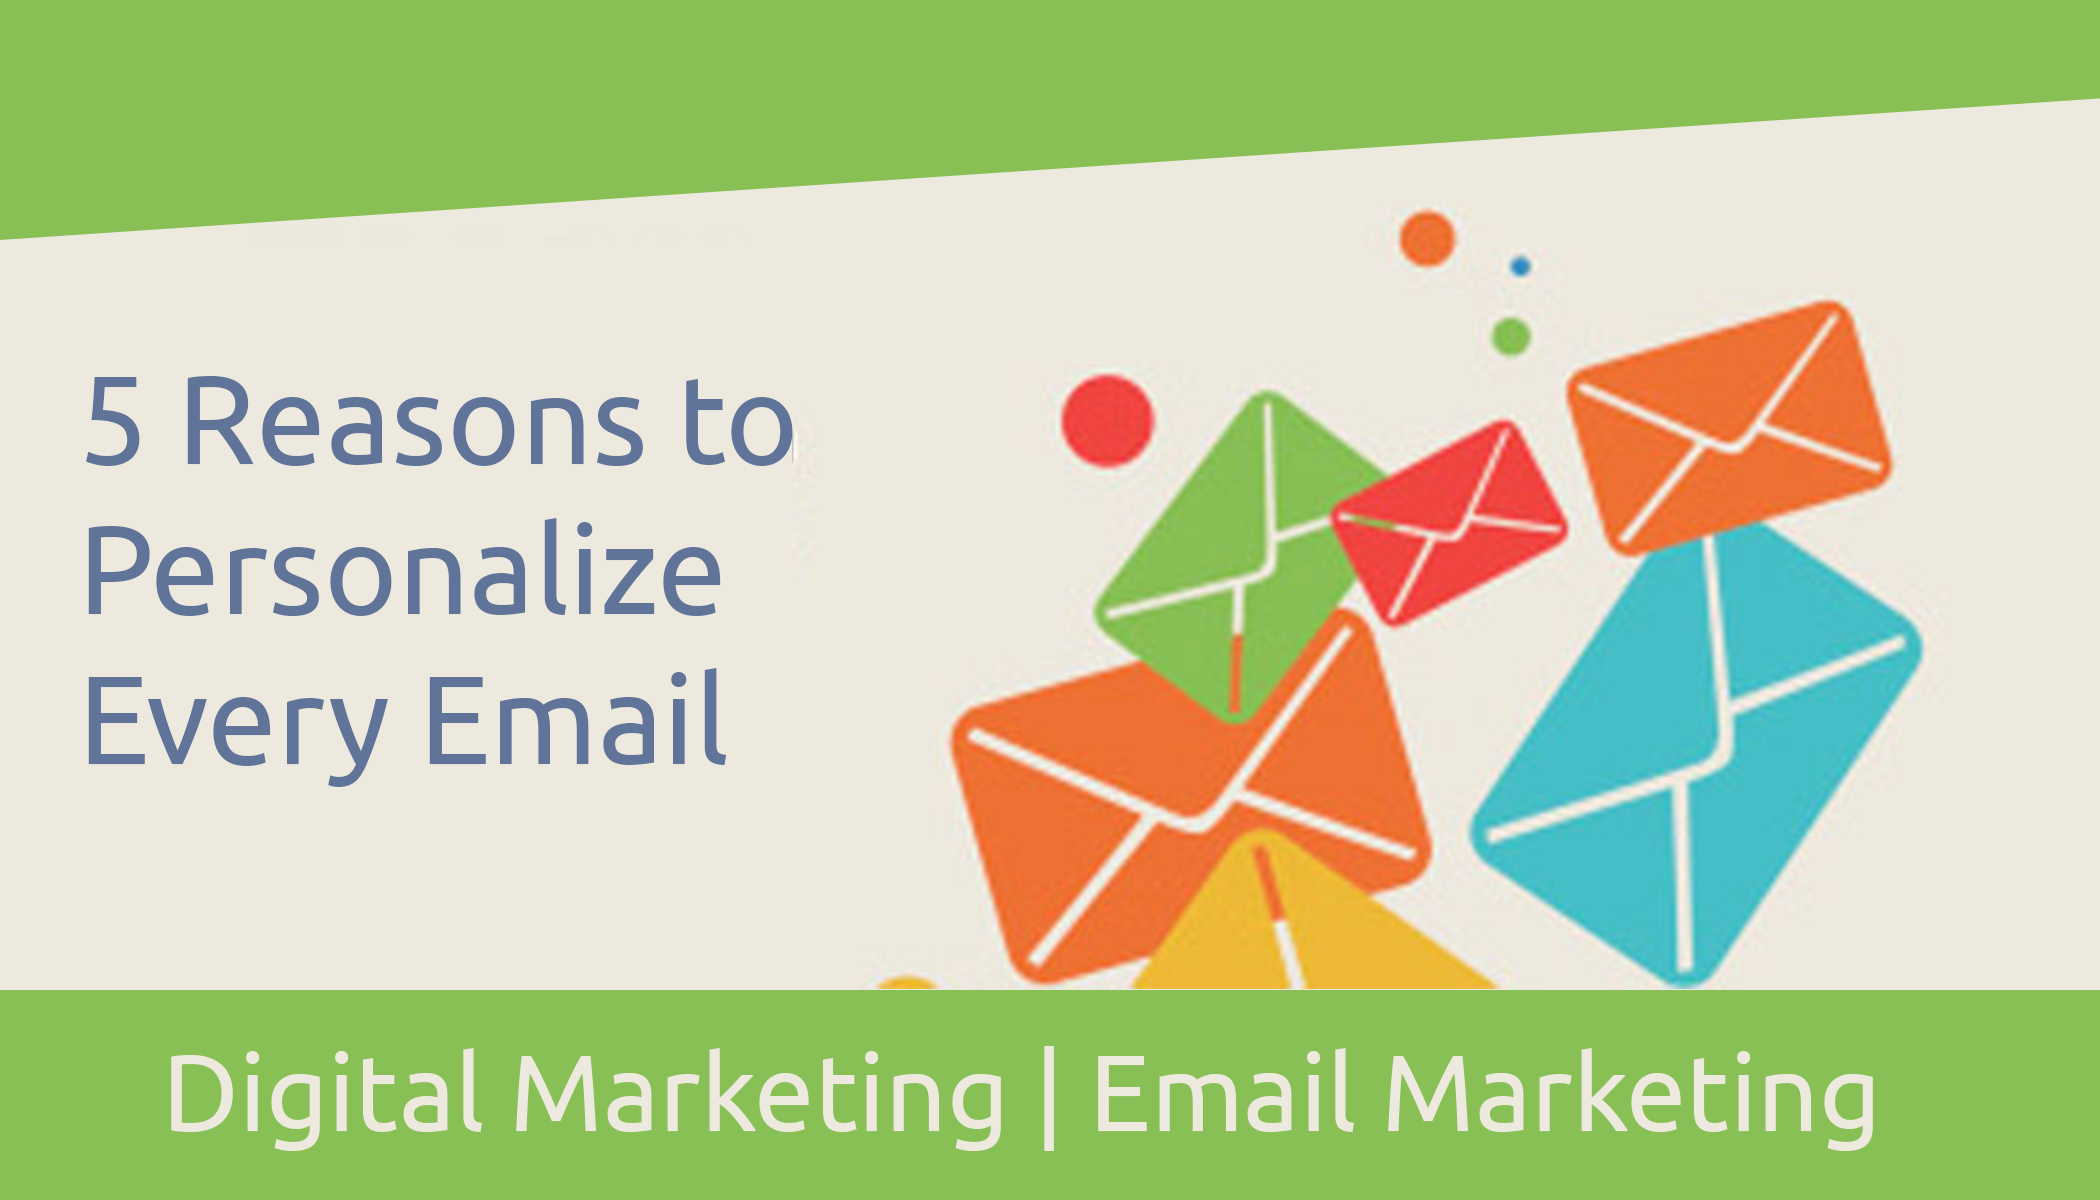 5 Reasons to Personalize Every Email